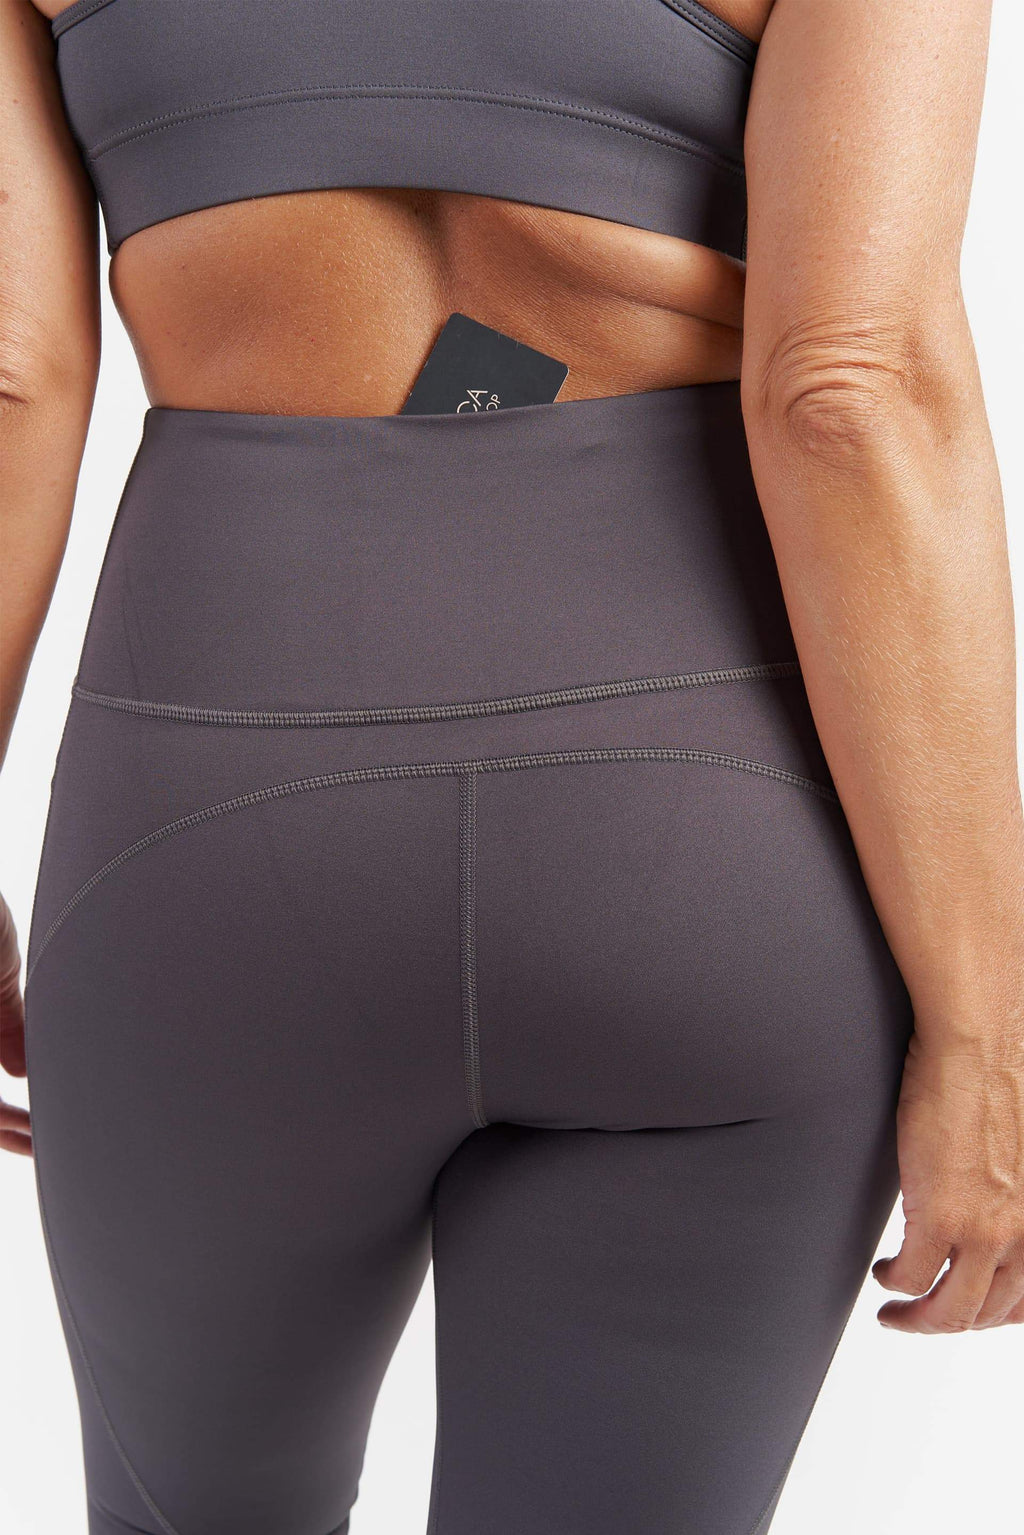 Training Pocket 3/4 Length Tight - Grey from Active Truth USA